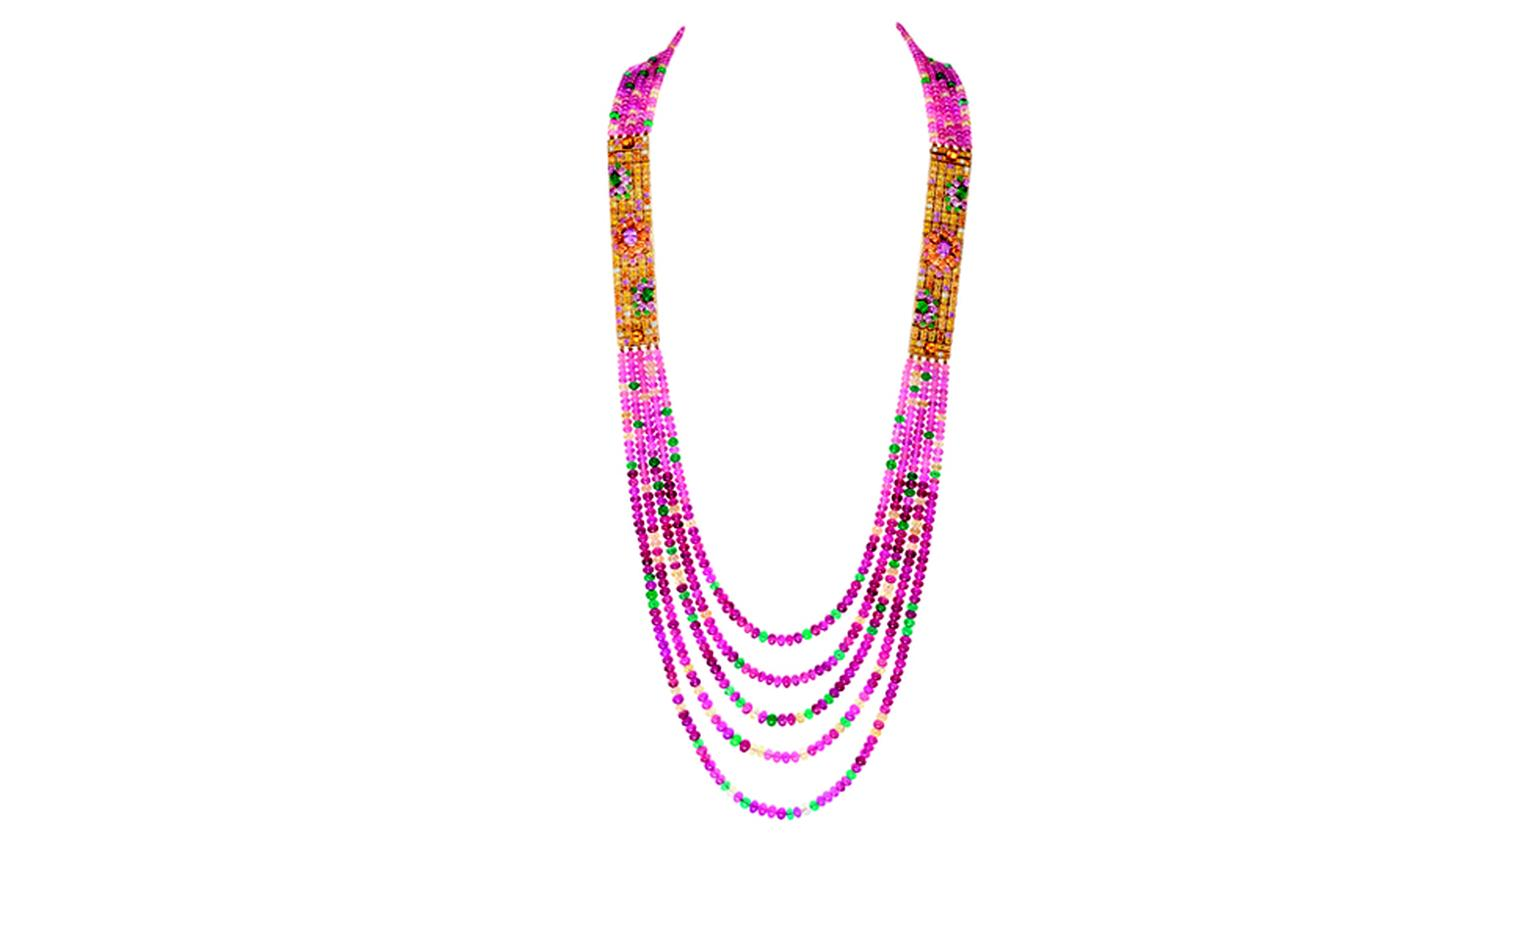 Boucheron Isola Bella necklace with rubellite and tourmaline beads, yellow sapphires, emeralds and spessartite garnets, rubies, pink sapphires and diamonds in yellow  gold.  The two gold sections can be detached to form a bracelet and the neckla...